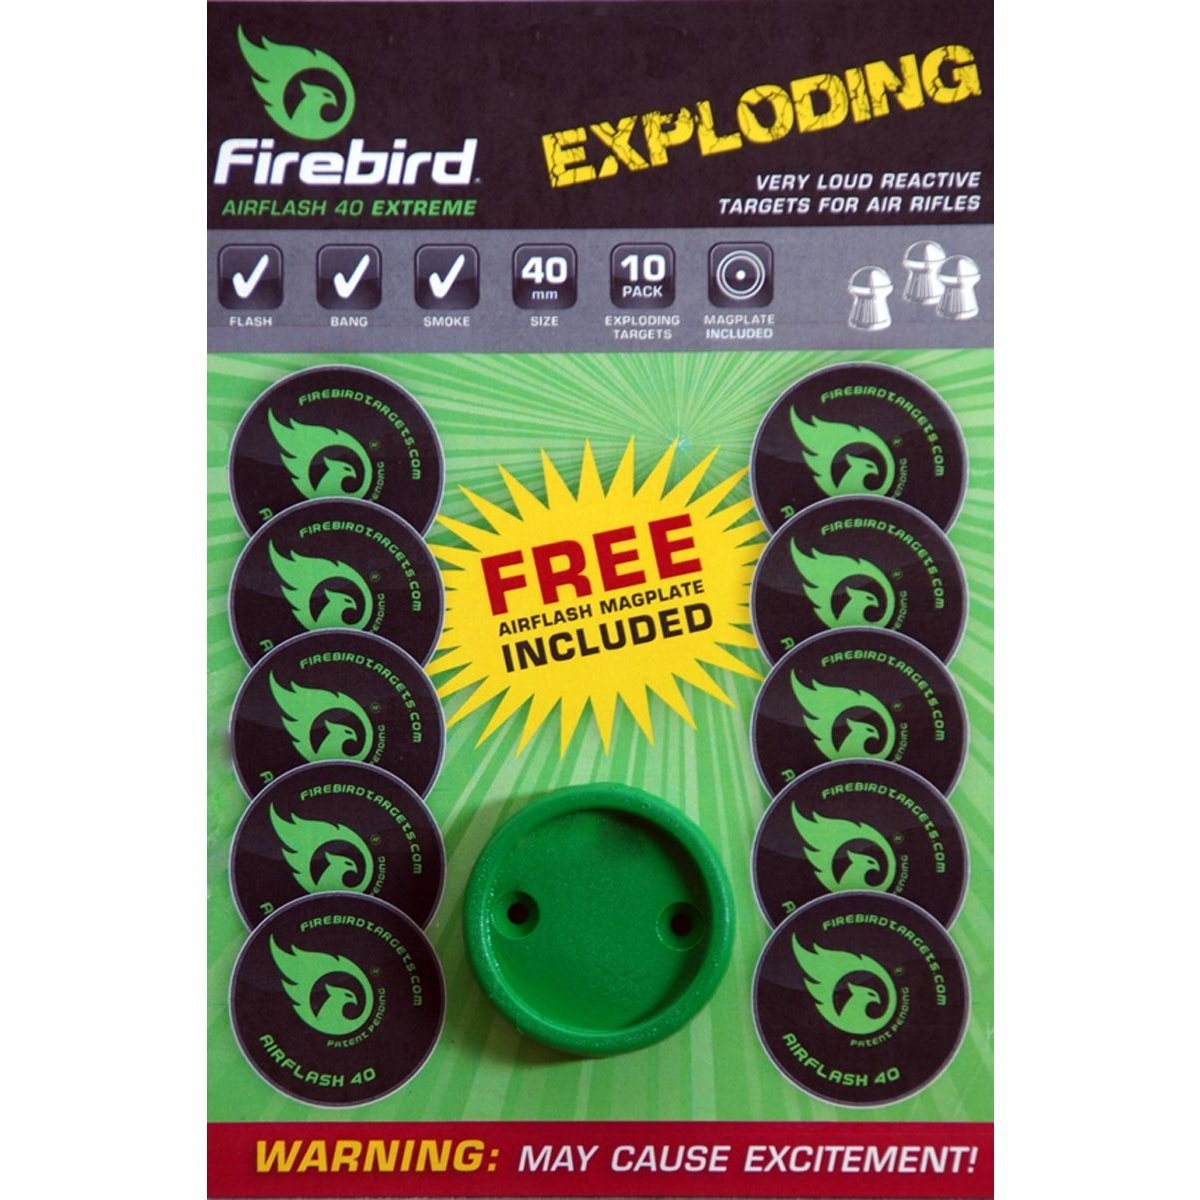 Firebird Exploding Targets Airflash Extreme by John Rothery Wholesale